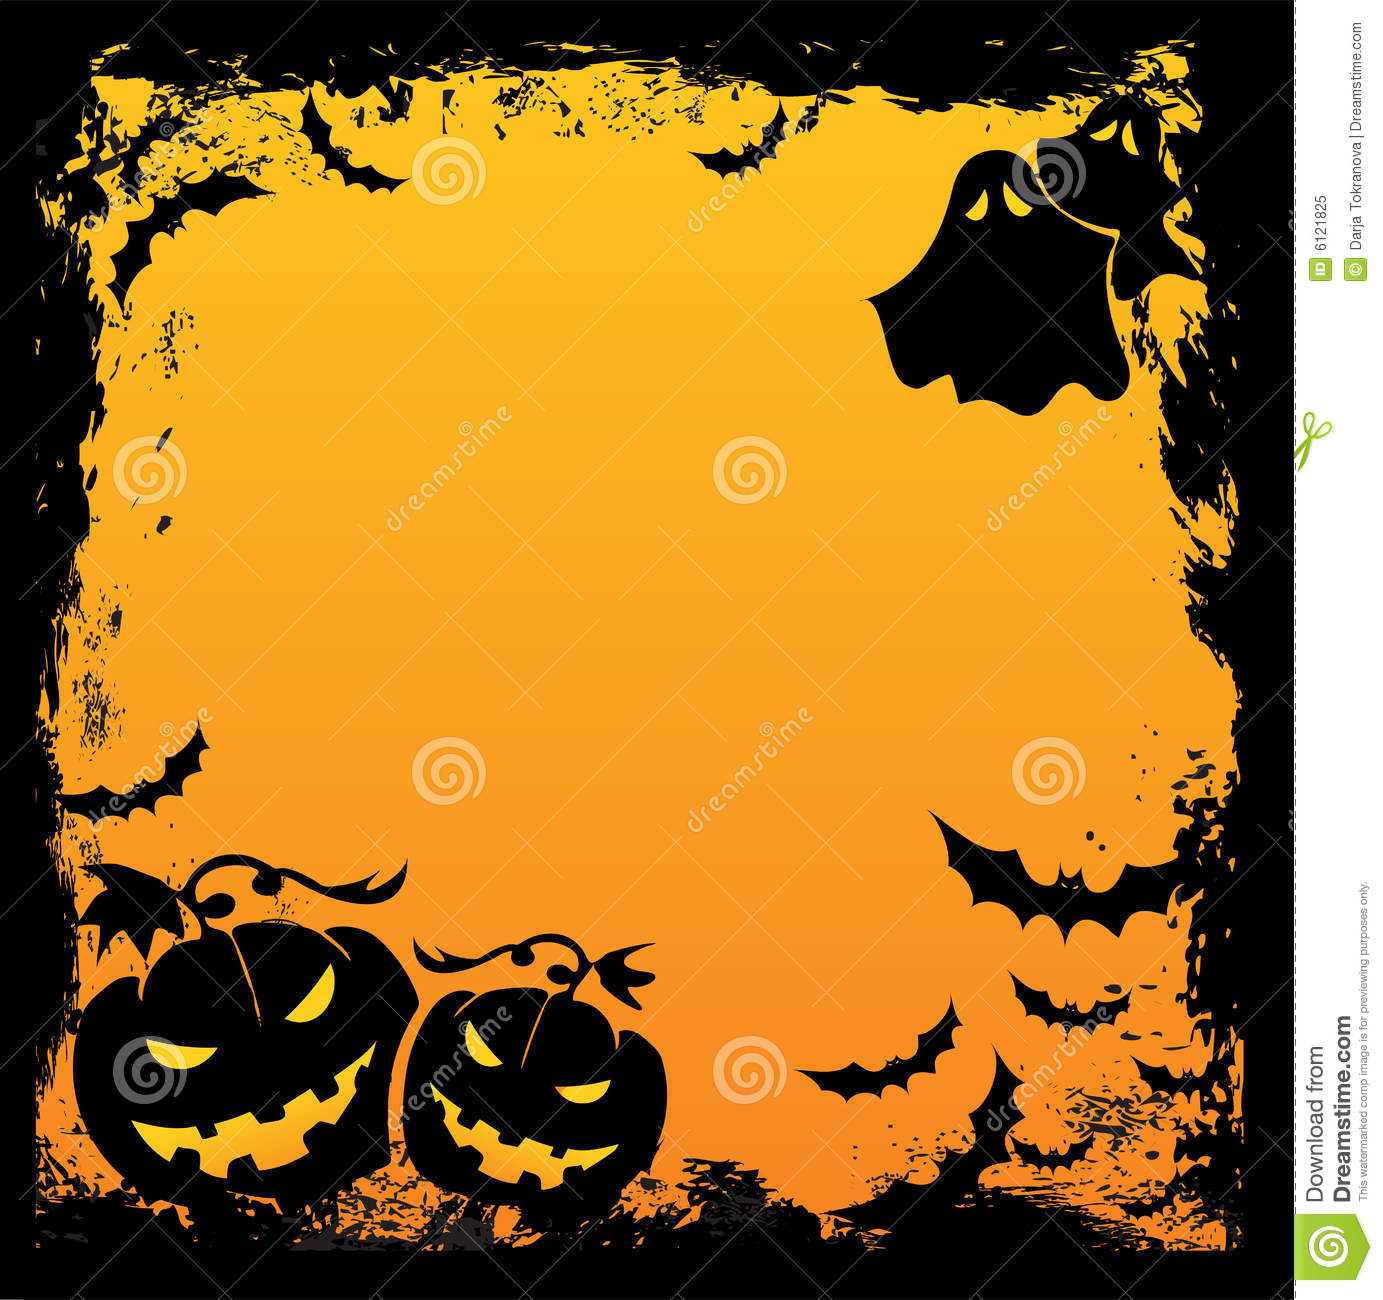 Spooky Fall Wallpaper Halloween Background Royalty Free Stock Photo Image 6121825